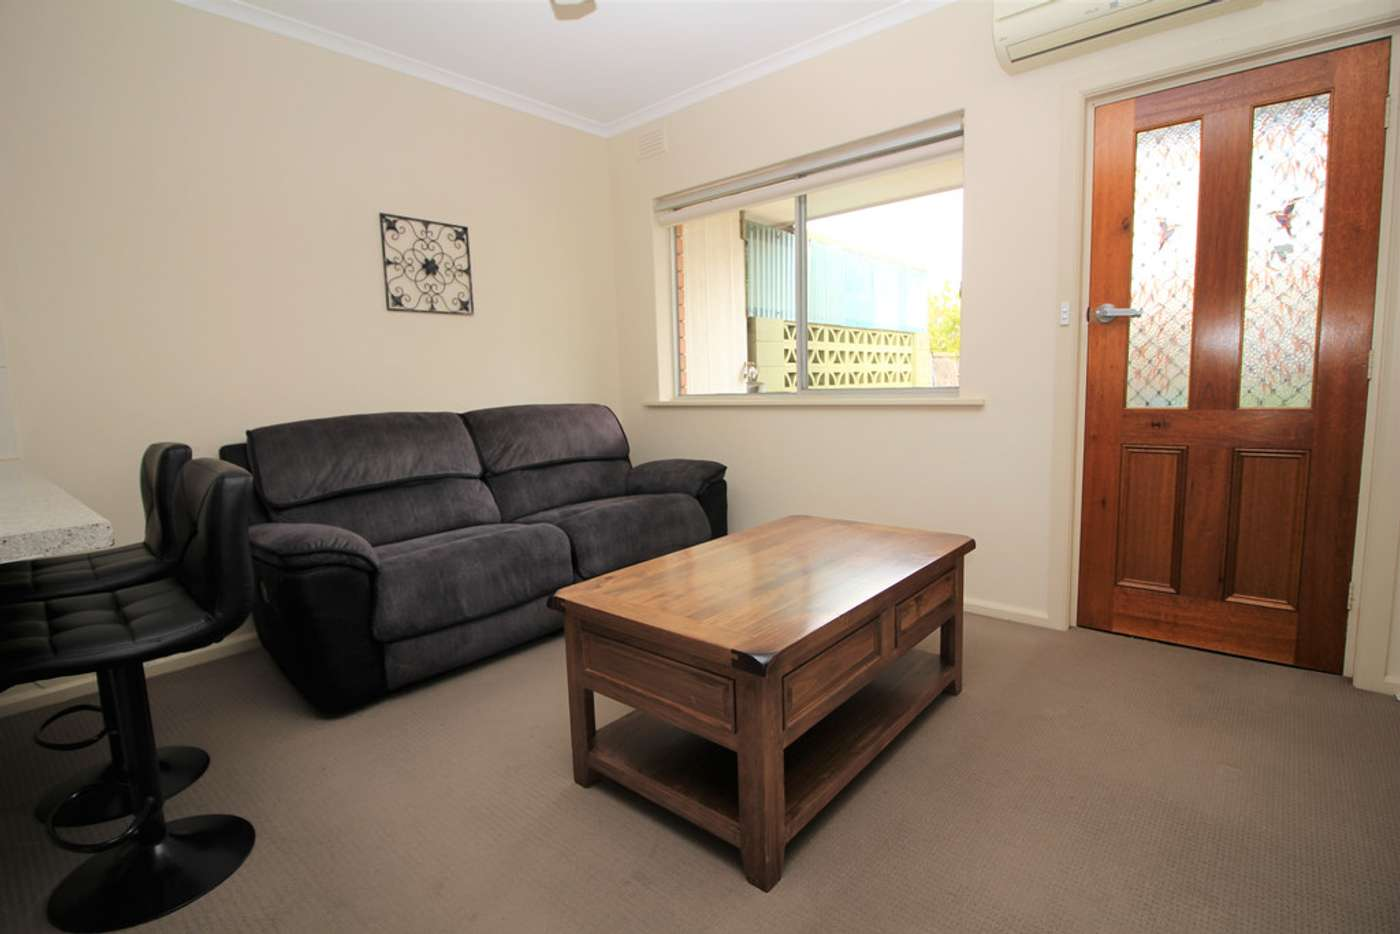 Main view of Homely house listing, 7/14 Doughty Street, Mount Gambier SA 5290